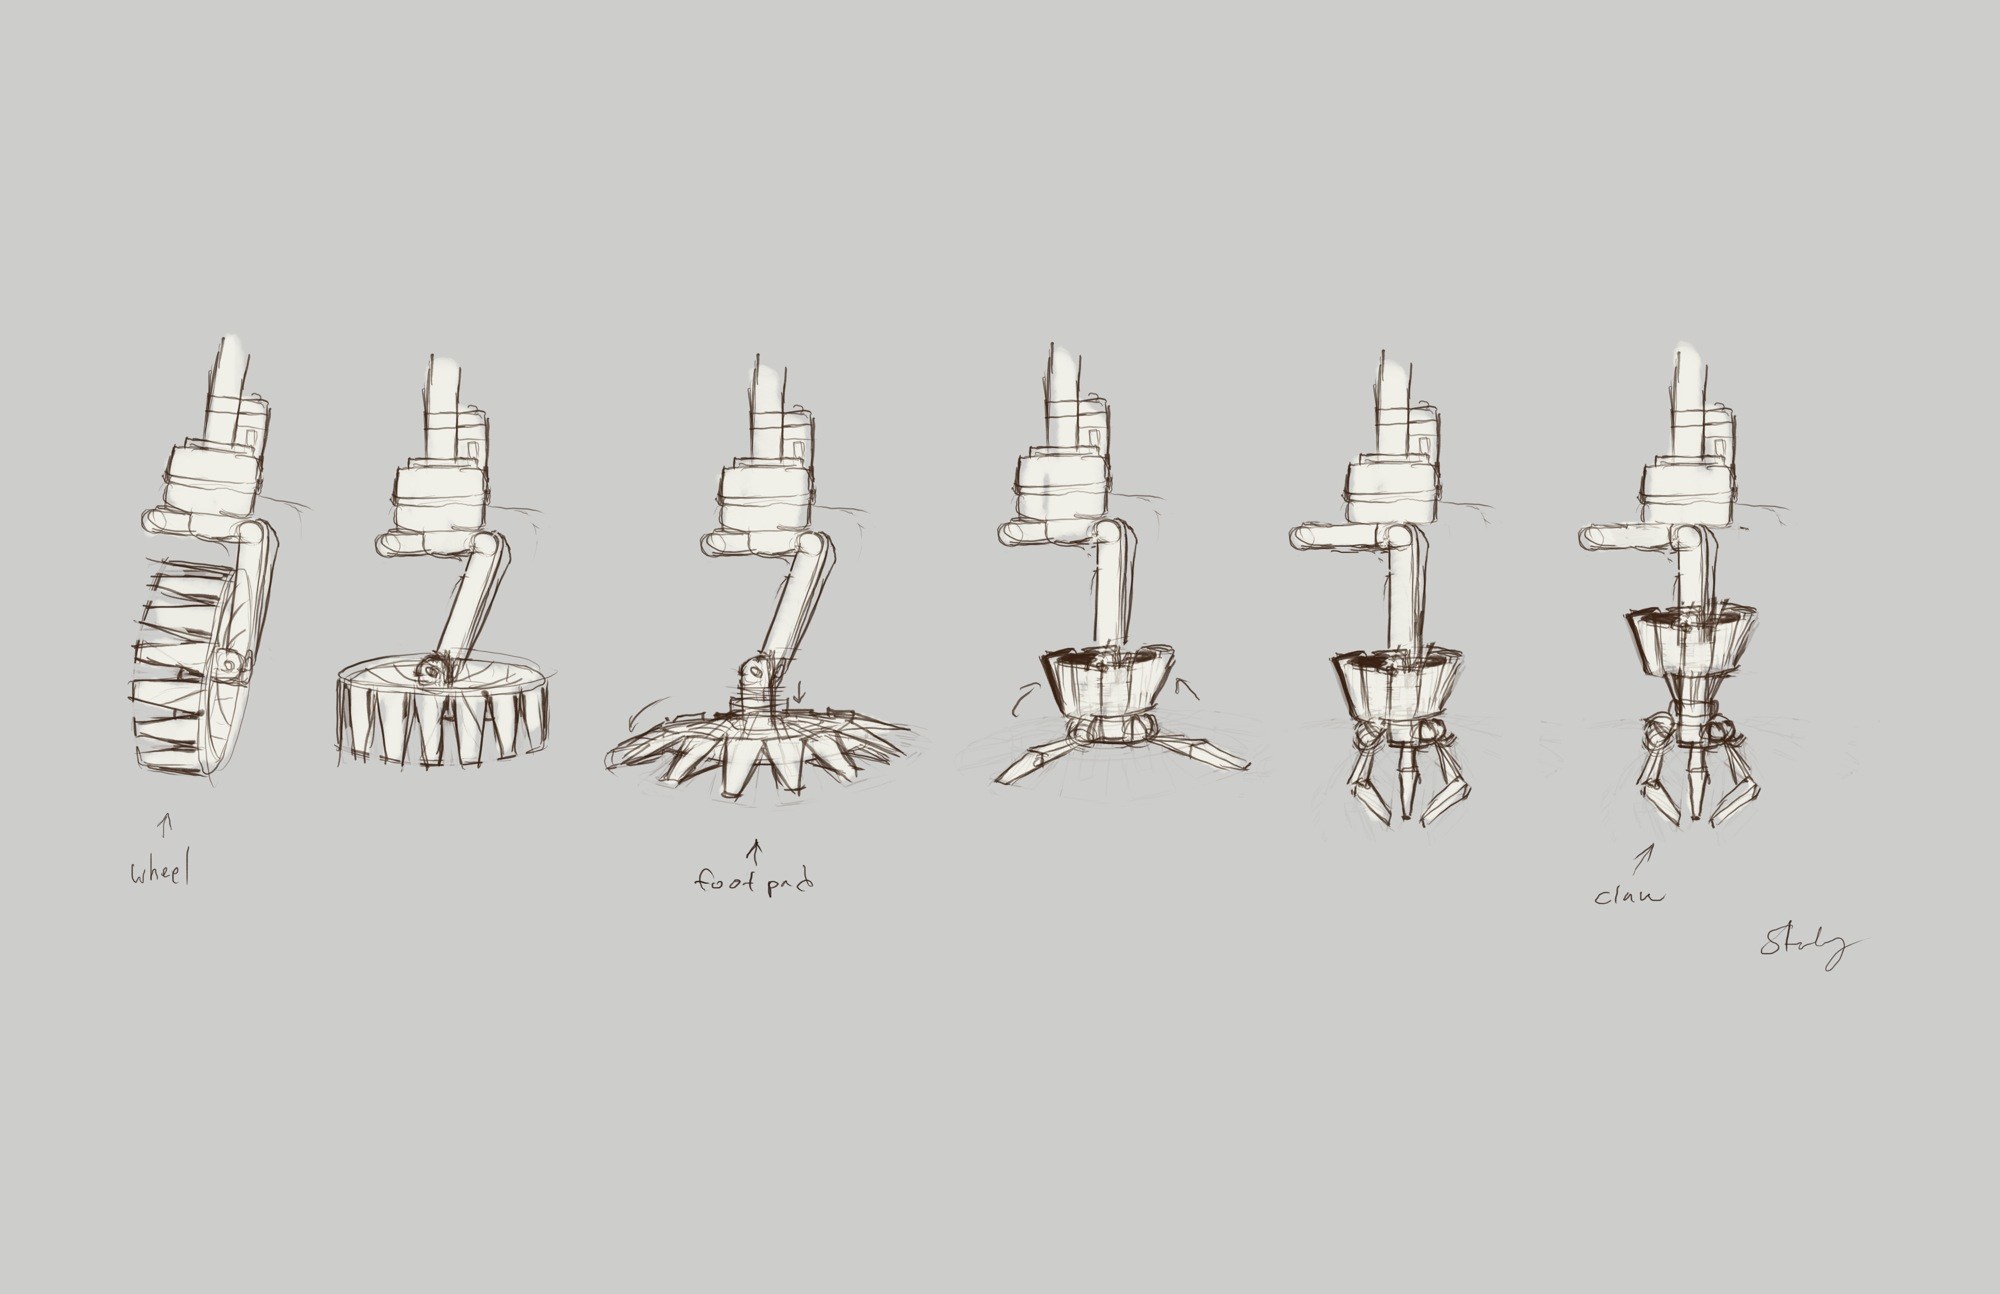 the claw animation sequence.